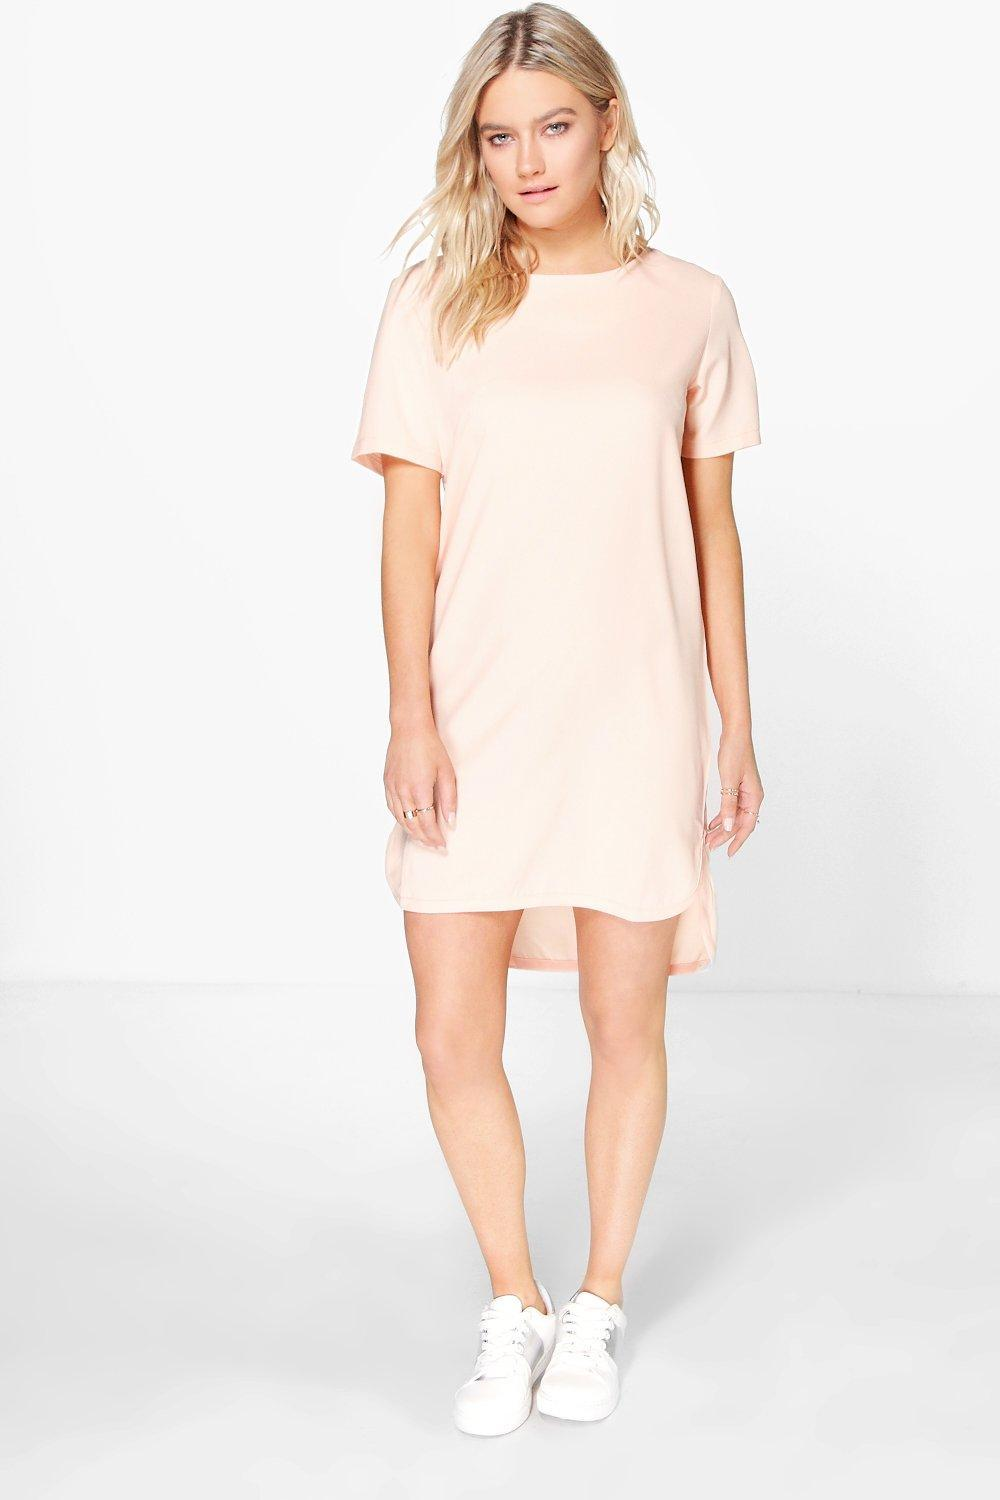 Step Hem Woven Shift Dress Nude - style: shift; length: mid thigh; pattern: plain; predominant colour: nude; occasions: casual; fit: body skimming; fibres: polyester/polyamide - 100%; neckline: crew; sleeve length: short sleeve; sleeve style: standard; pattern type: fabric; texture group: other - light to midweight; season: s/s 2016; wardrobe: basic